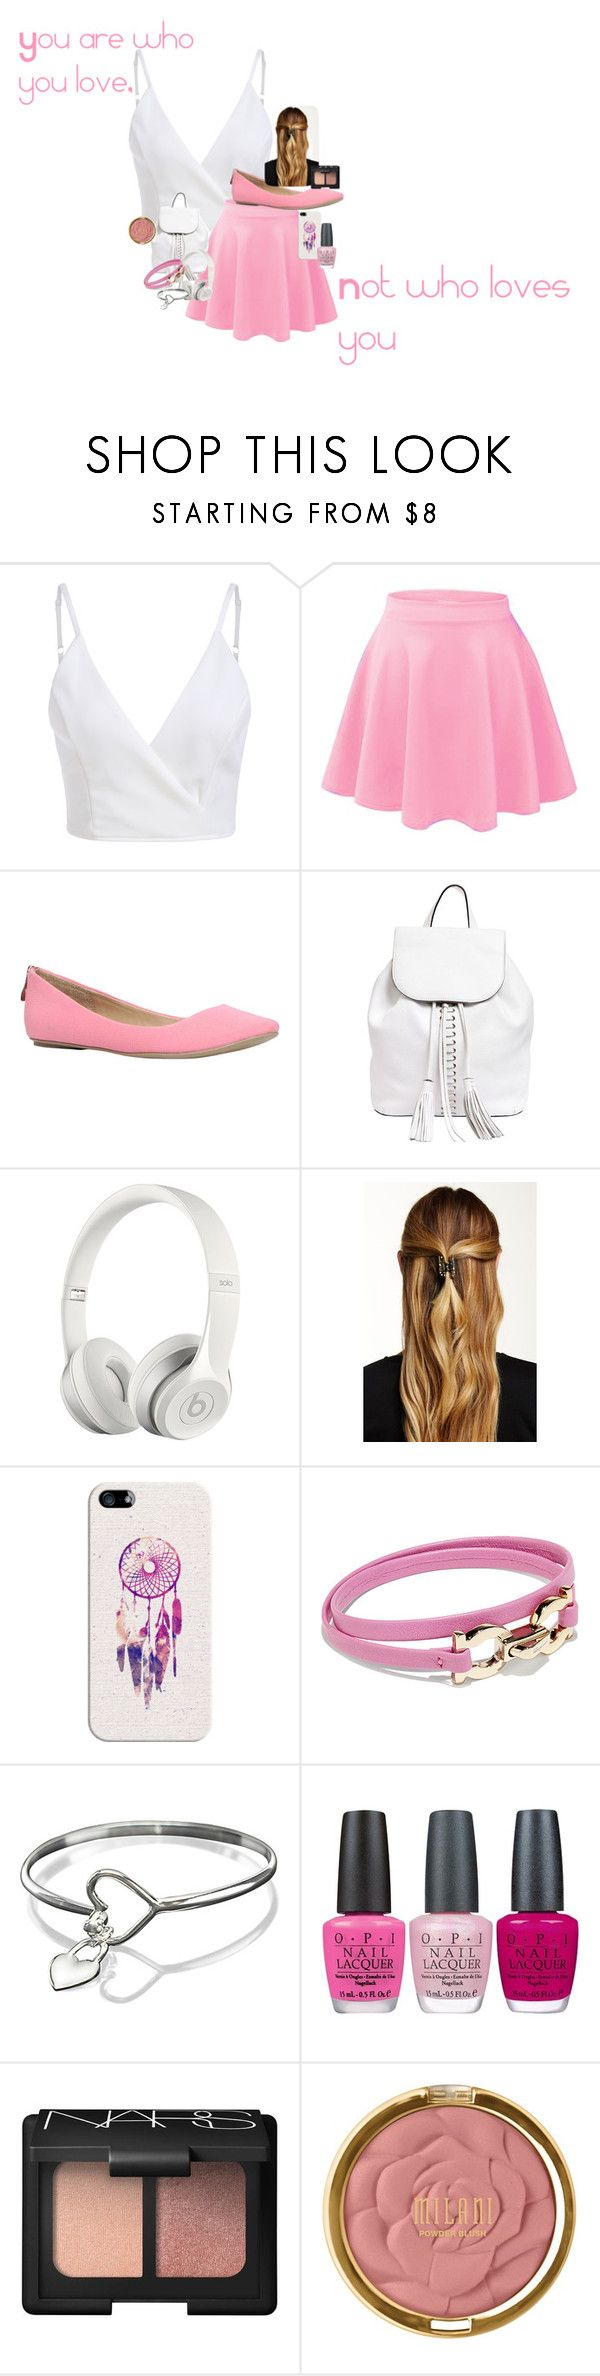 """Untitled #224"" by ava-adams123 ❤ liked on Polyvore featuring Call it SPRING, Rebecca Minkoff, Beats by Dr. Dre, Natasha Accessories, Casetify, Salvatore Ferragamo, OPI, NARS Cosmetics and Milani"